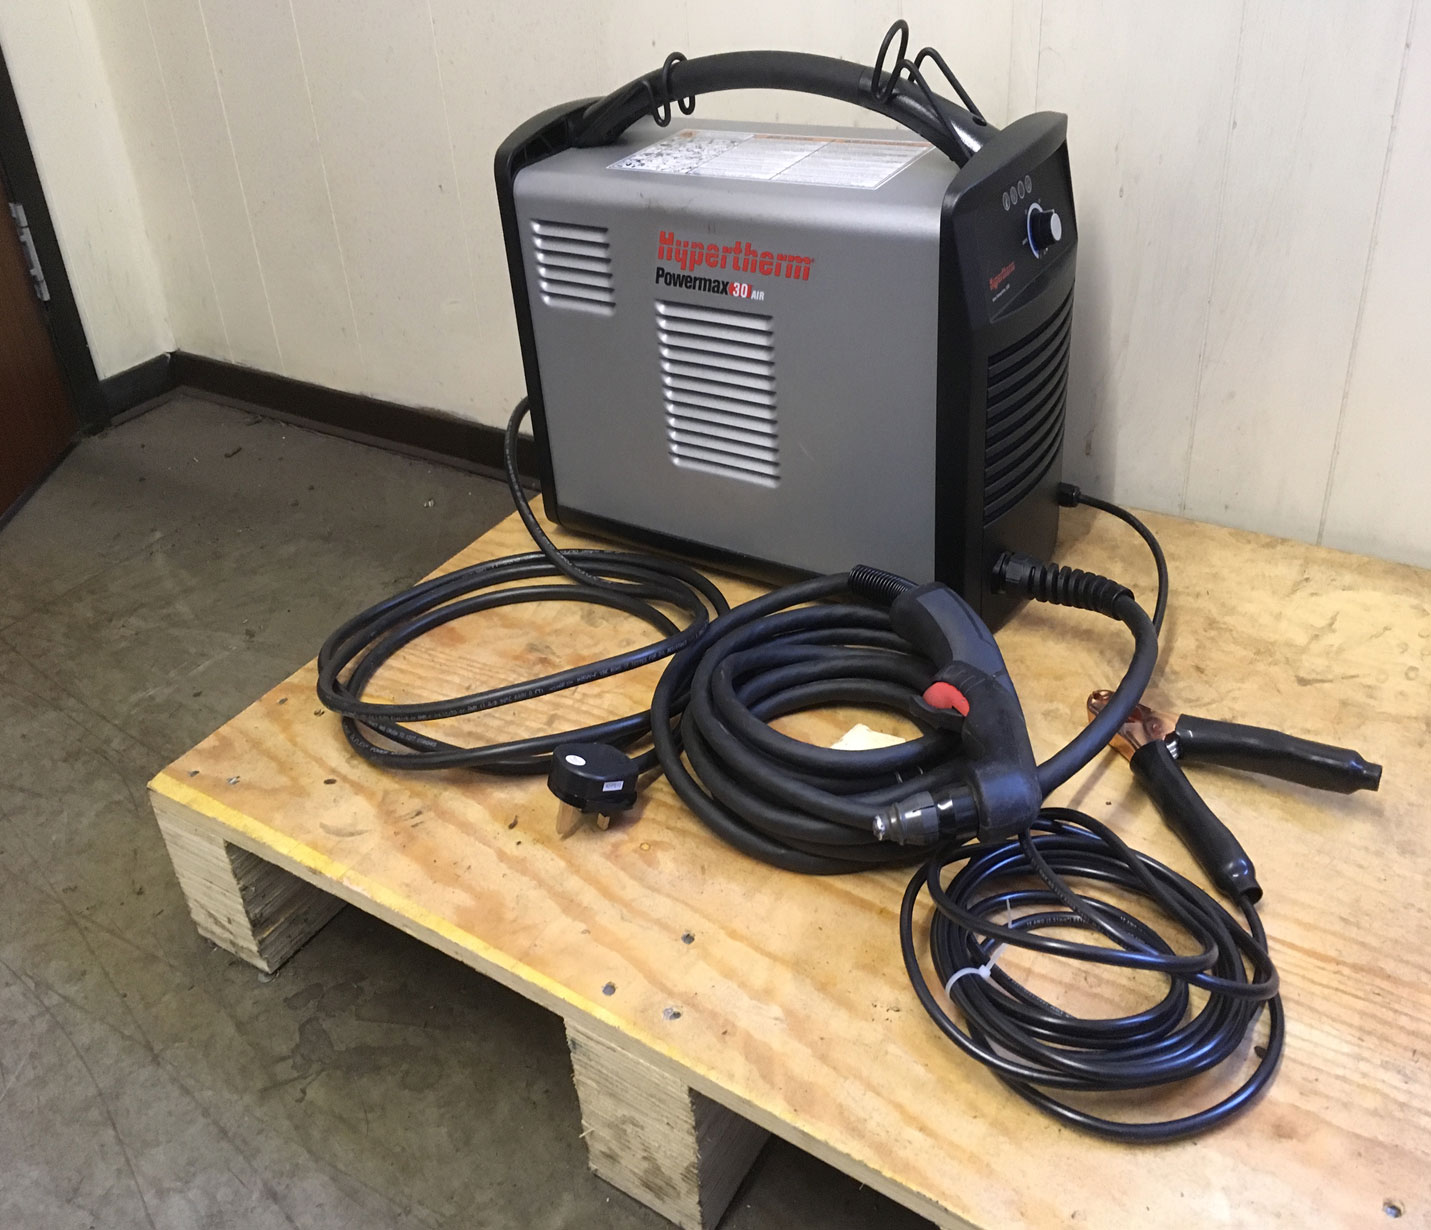 Used powermax30 air plasma